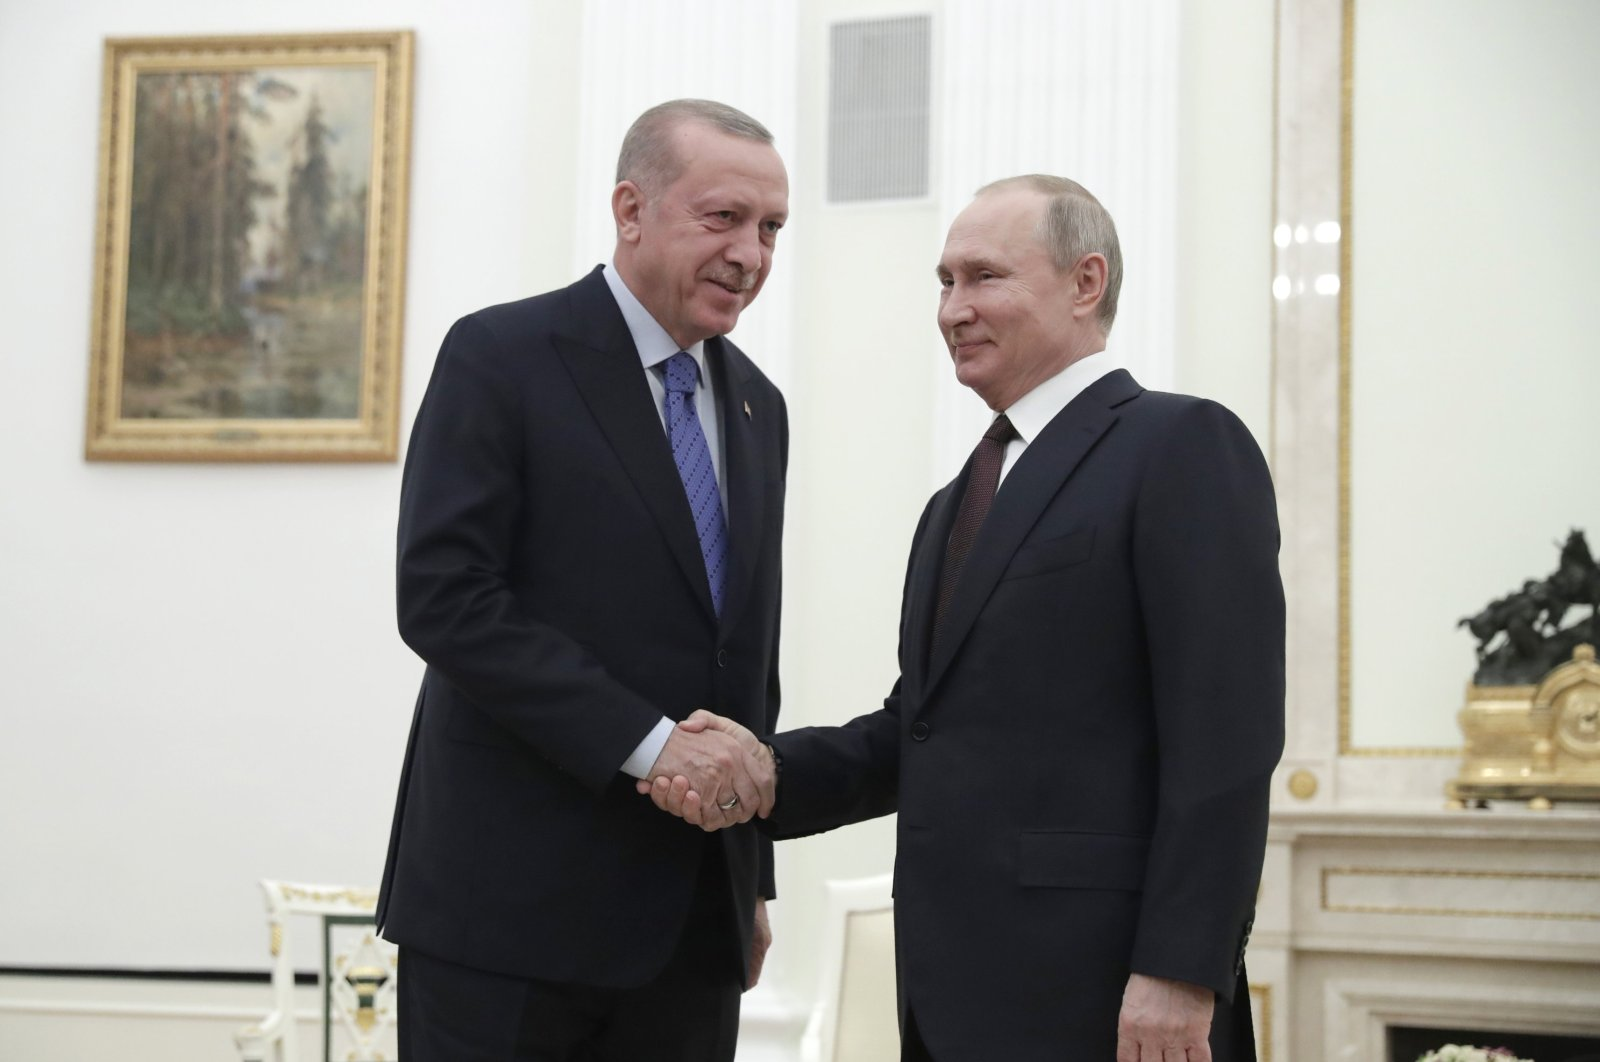 President Recep Tayyip Erdoğan (L) and Russian President Vladimir Putin shake hands prior to their talks at the Kremlin in Moscow, Russia, March 5, 2020. The Turkish and Russian leaders are set to hold talks in Moscow aimed at avoiding pitting their nations against each other, during hostilities in northwestern Syria. (AP Photo)